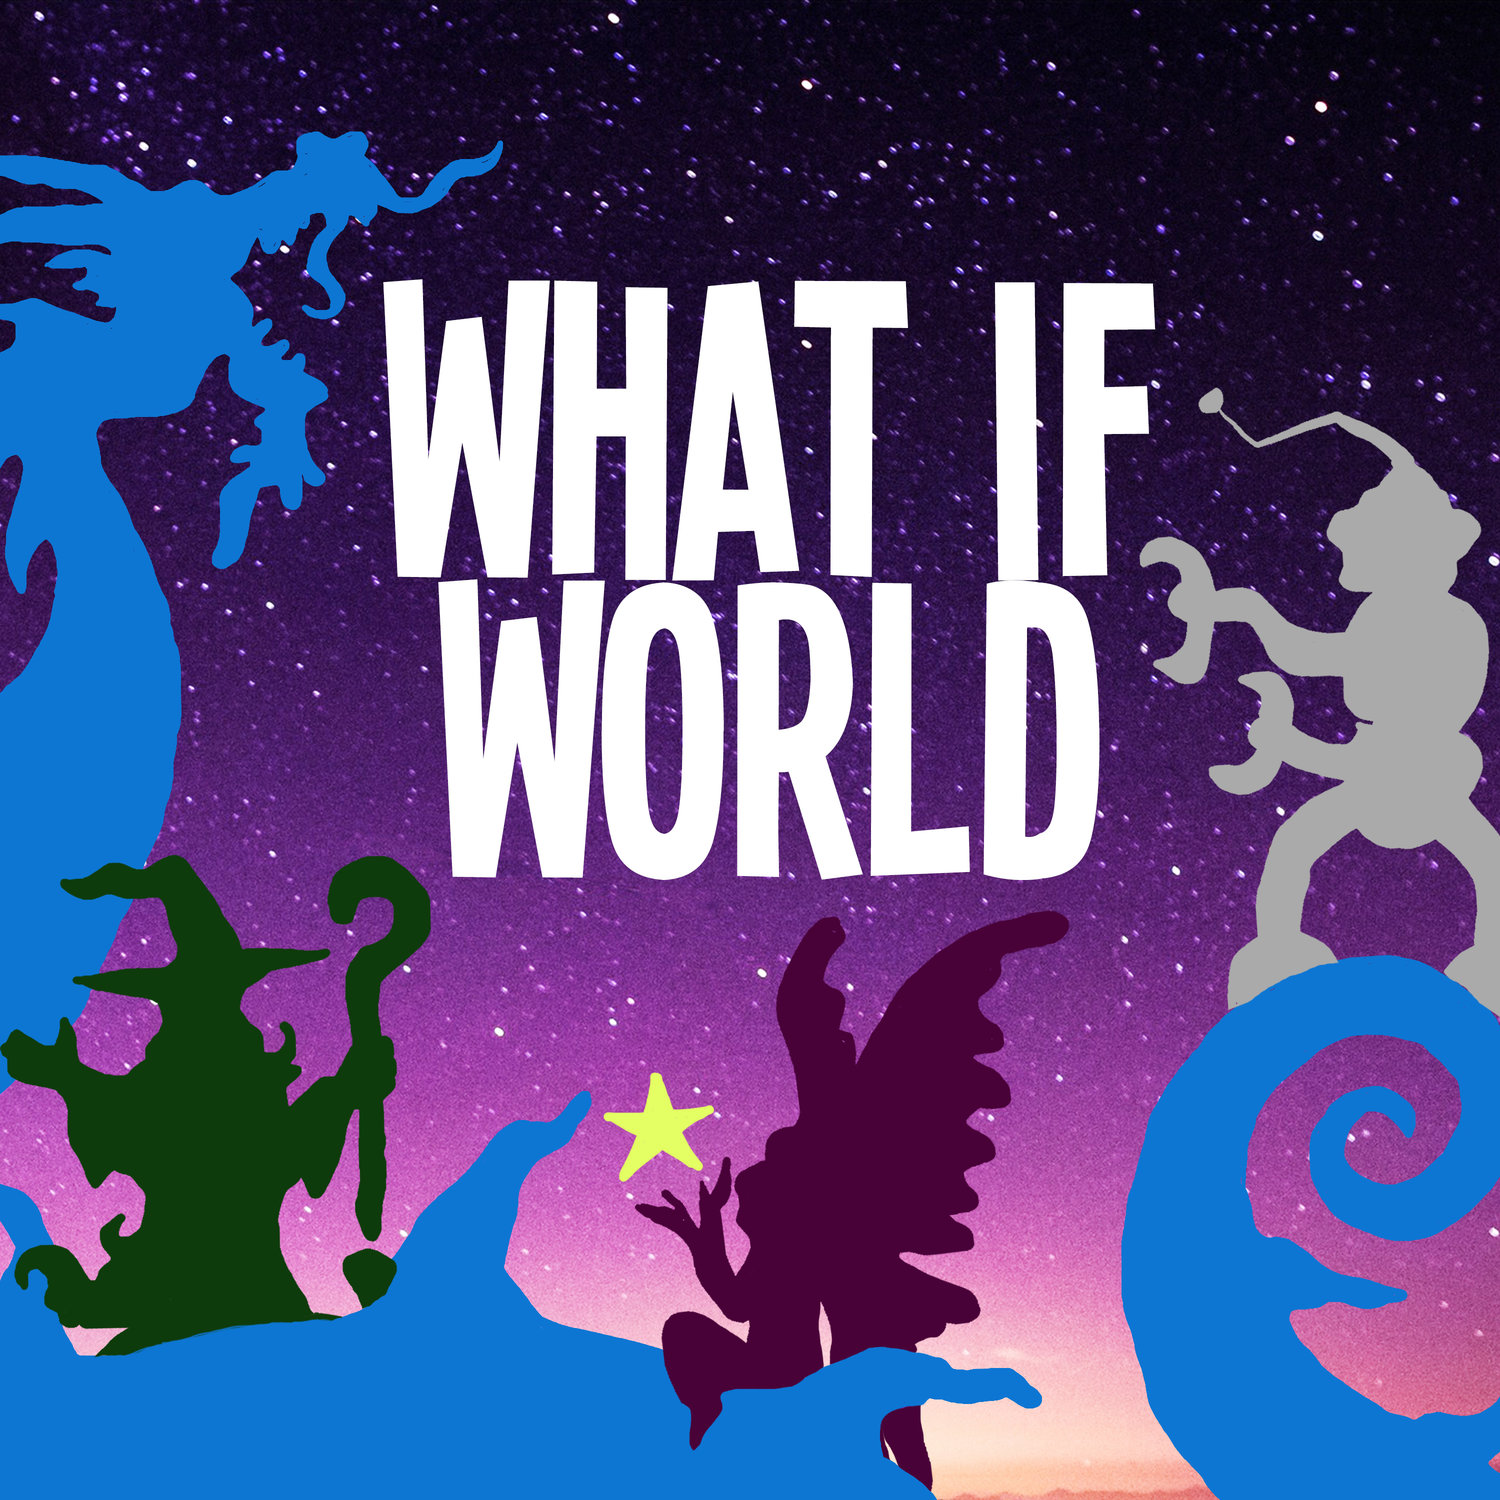 whatifworld logo